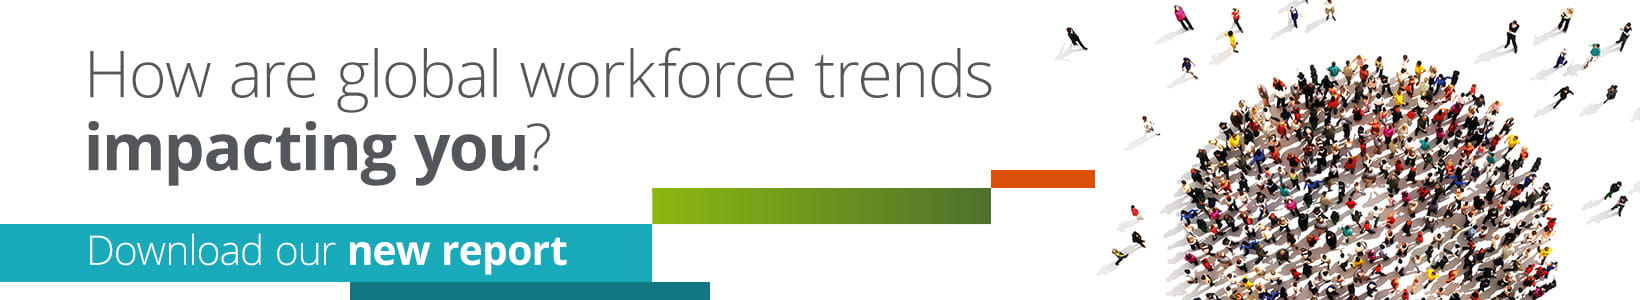 How are global workforce trends impacting you?